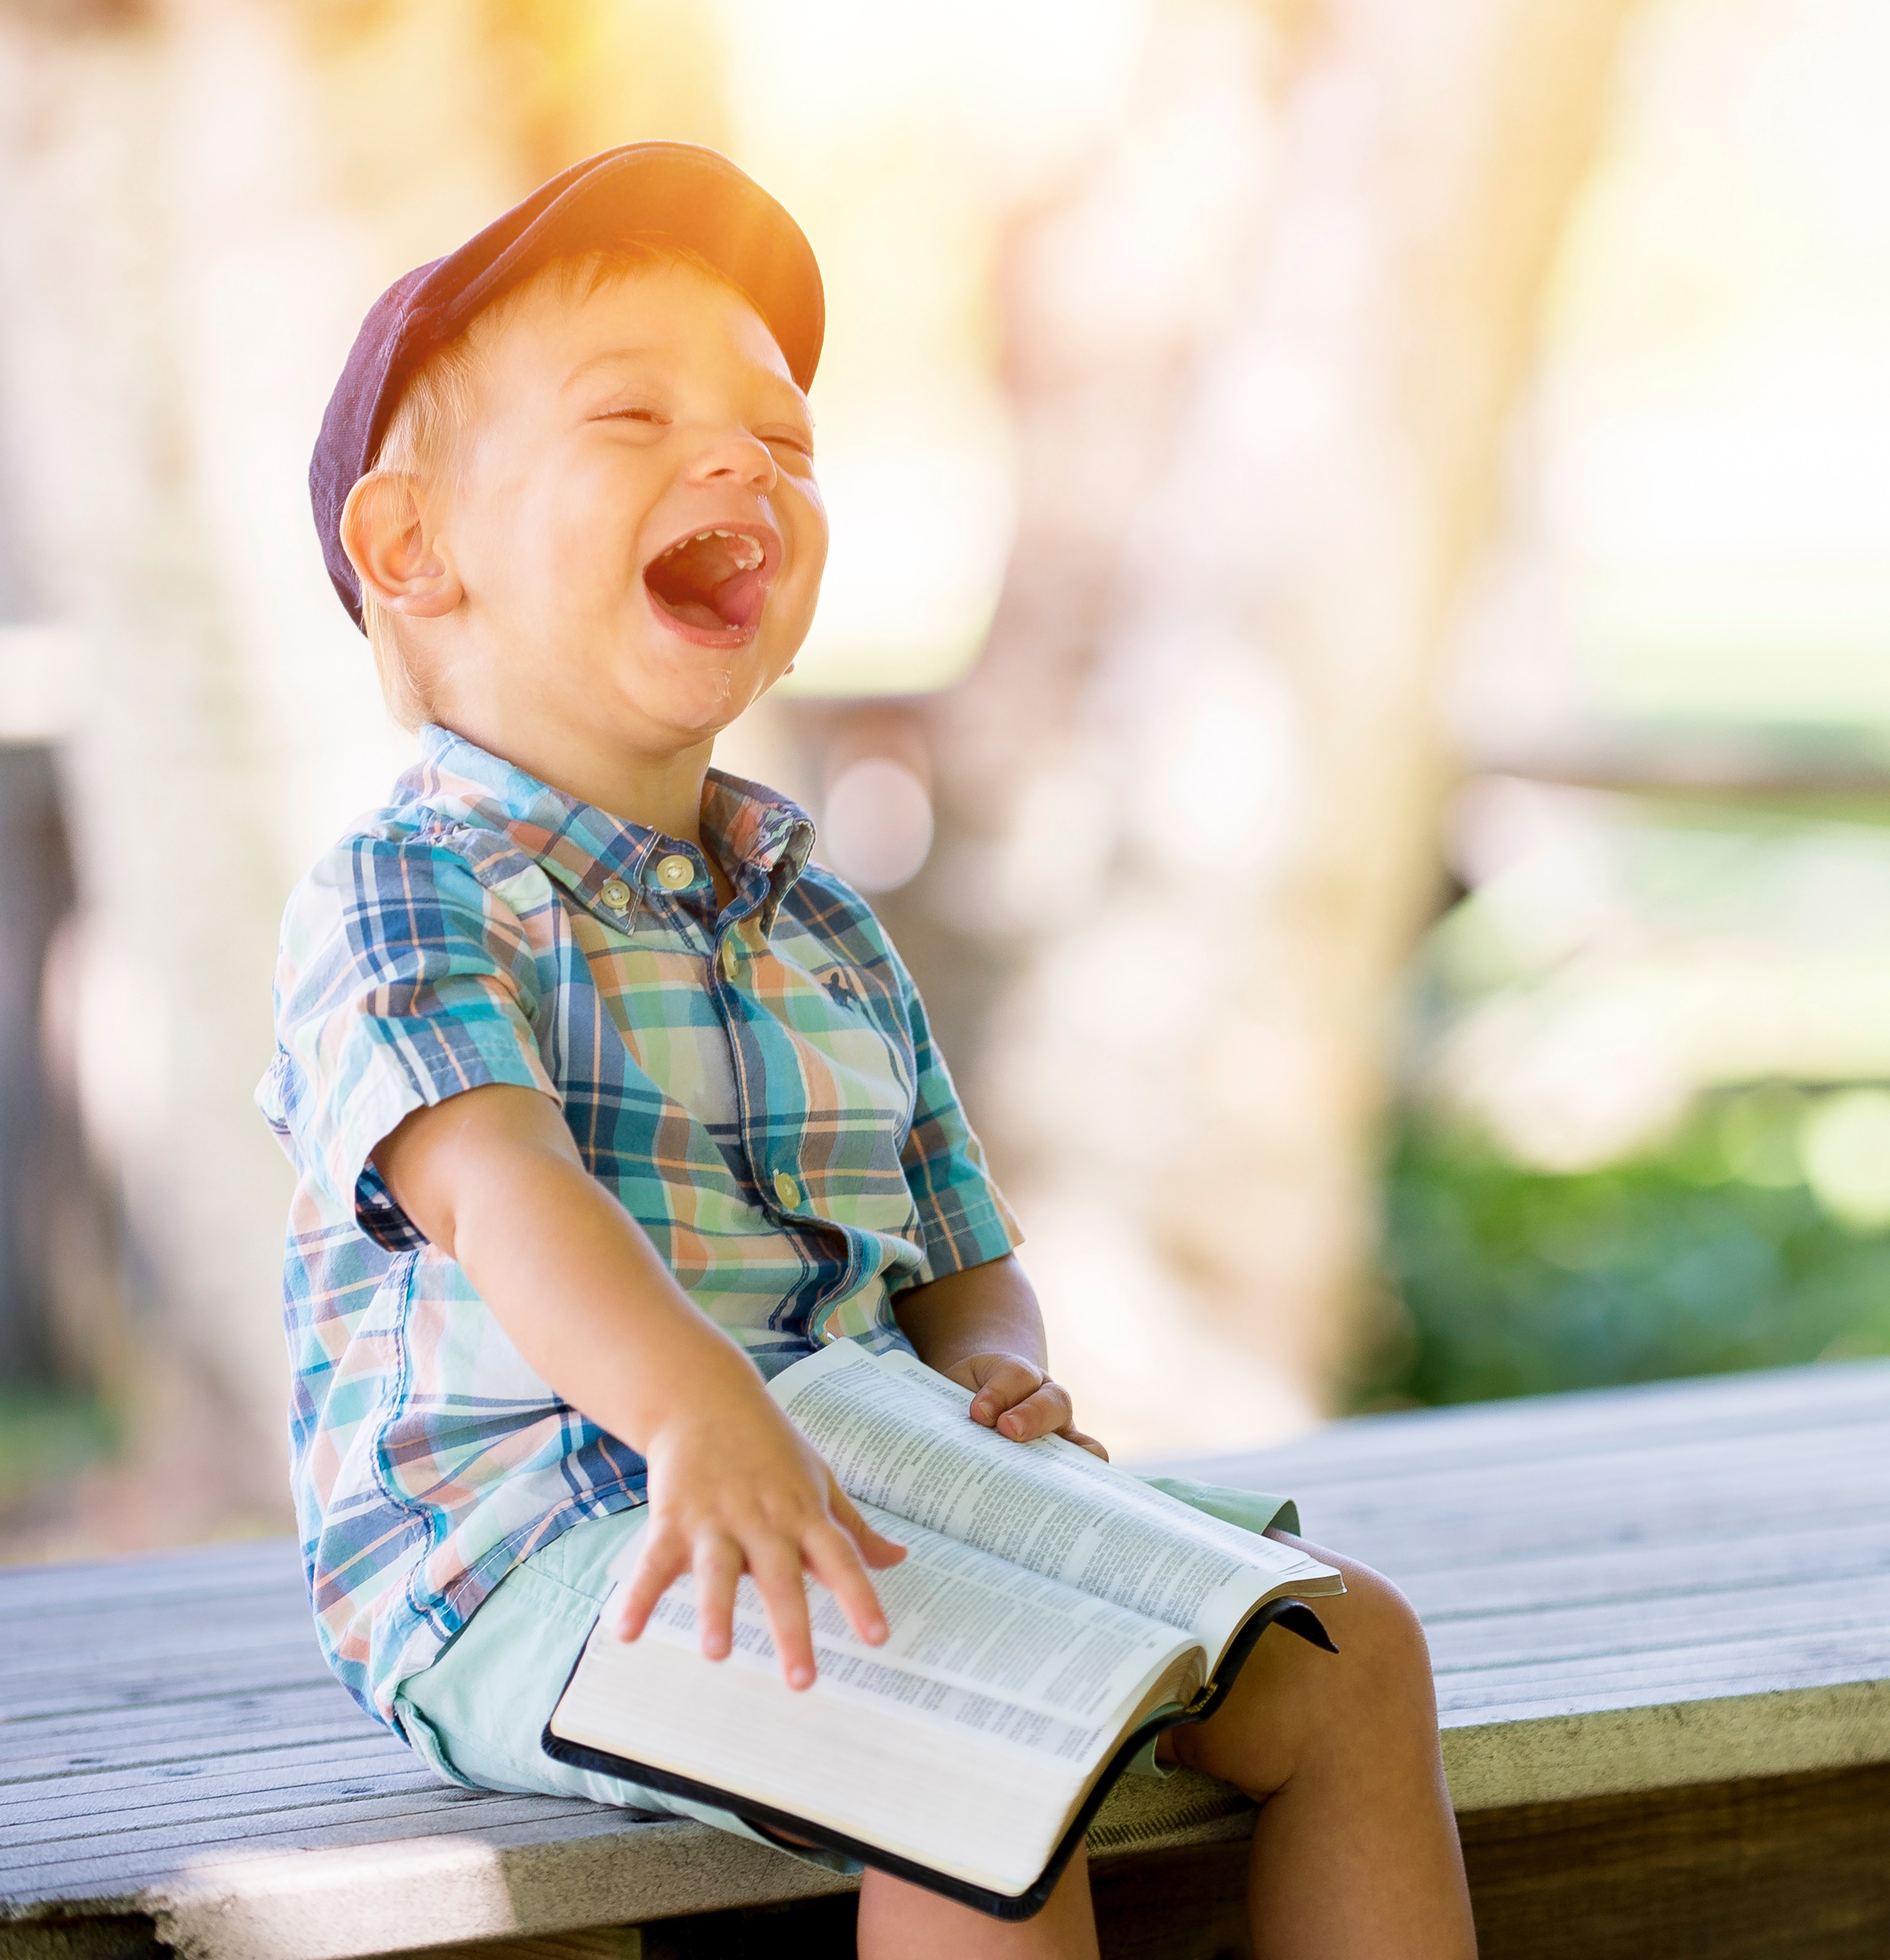 child reading and laughing